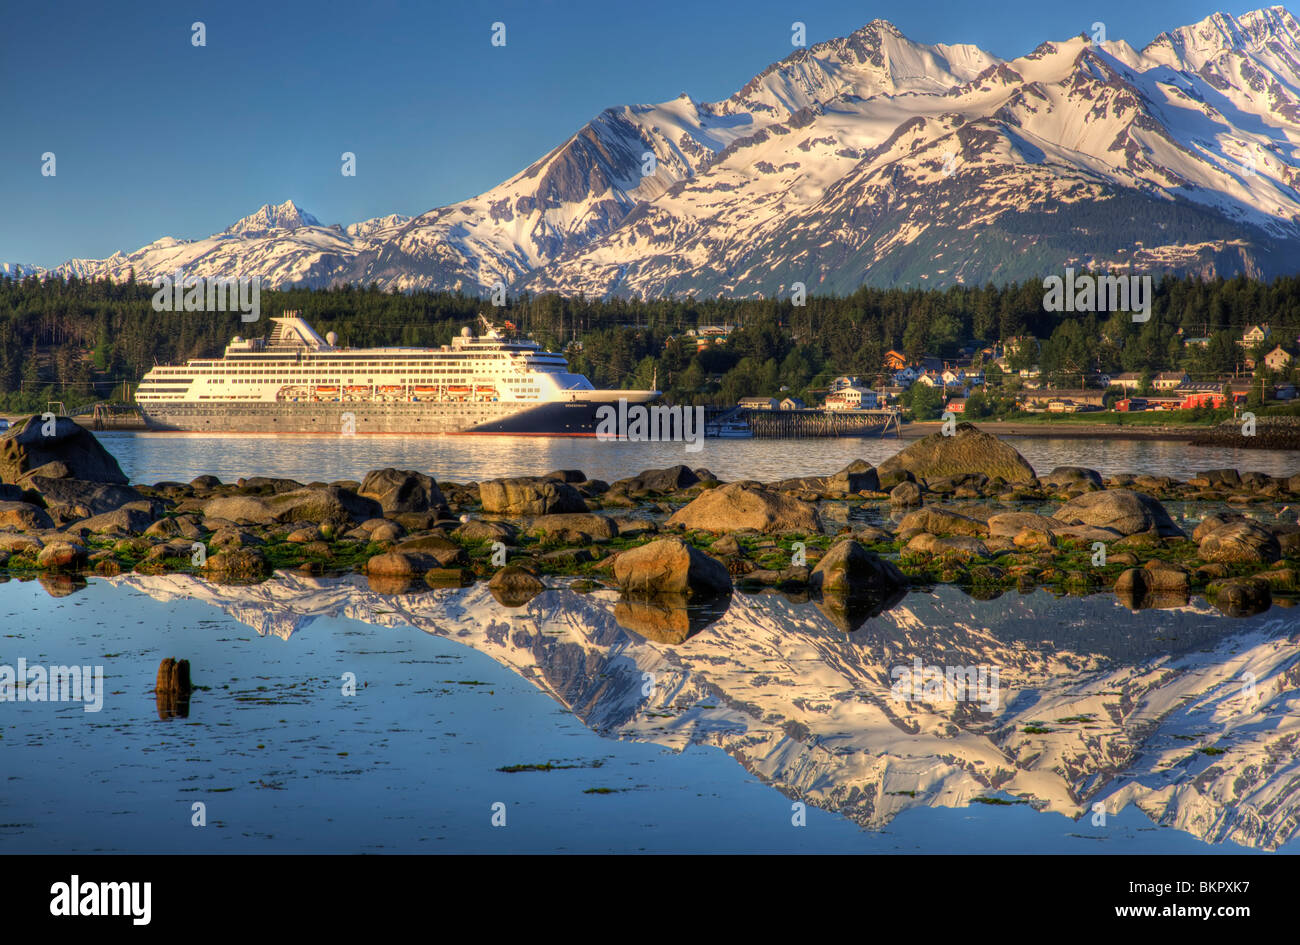 Holland America cruise ship 'Statendam' docked in Haines at sunrise, Southeast Alaska, Summer - Stock Image